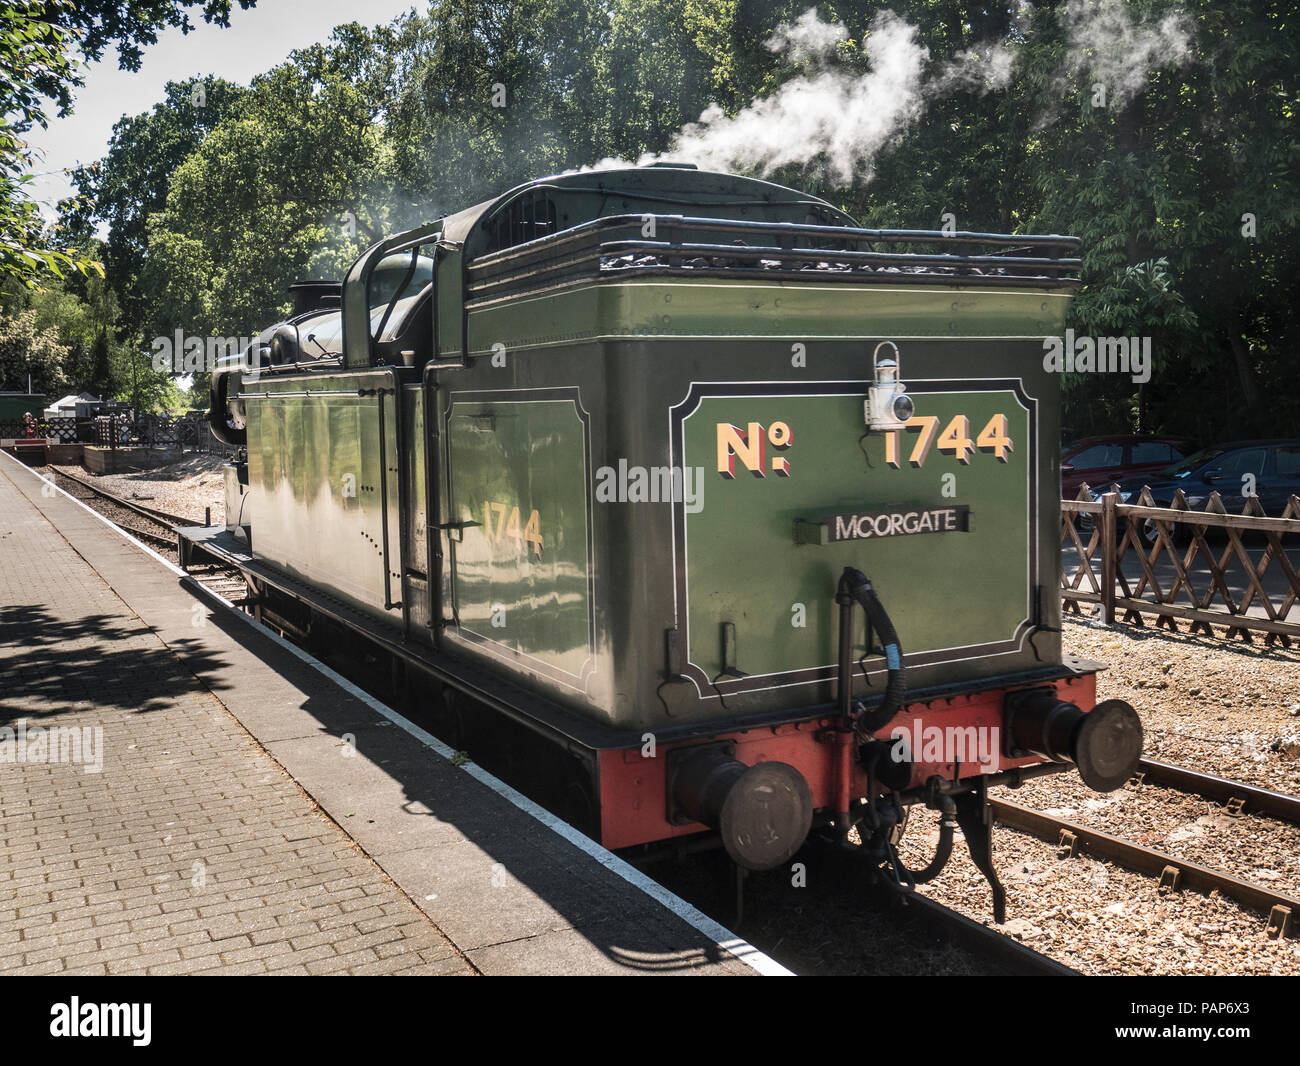 Class N2 0-6-2T tank engine 1744, built at the North British Locomotive  works in 1921. Ex BR number 69523, LNER locomotive number 4744,